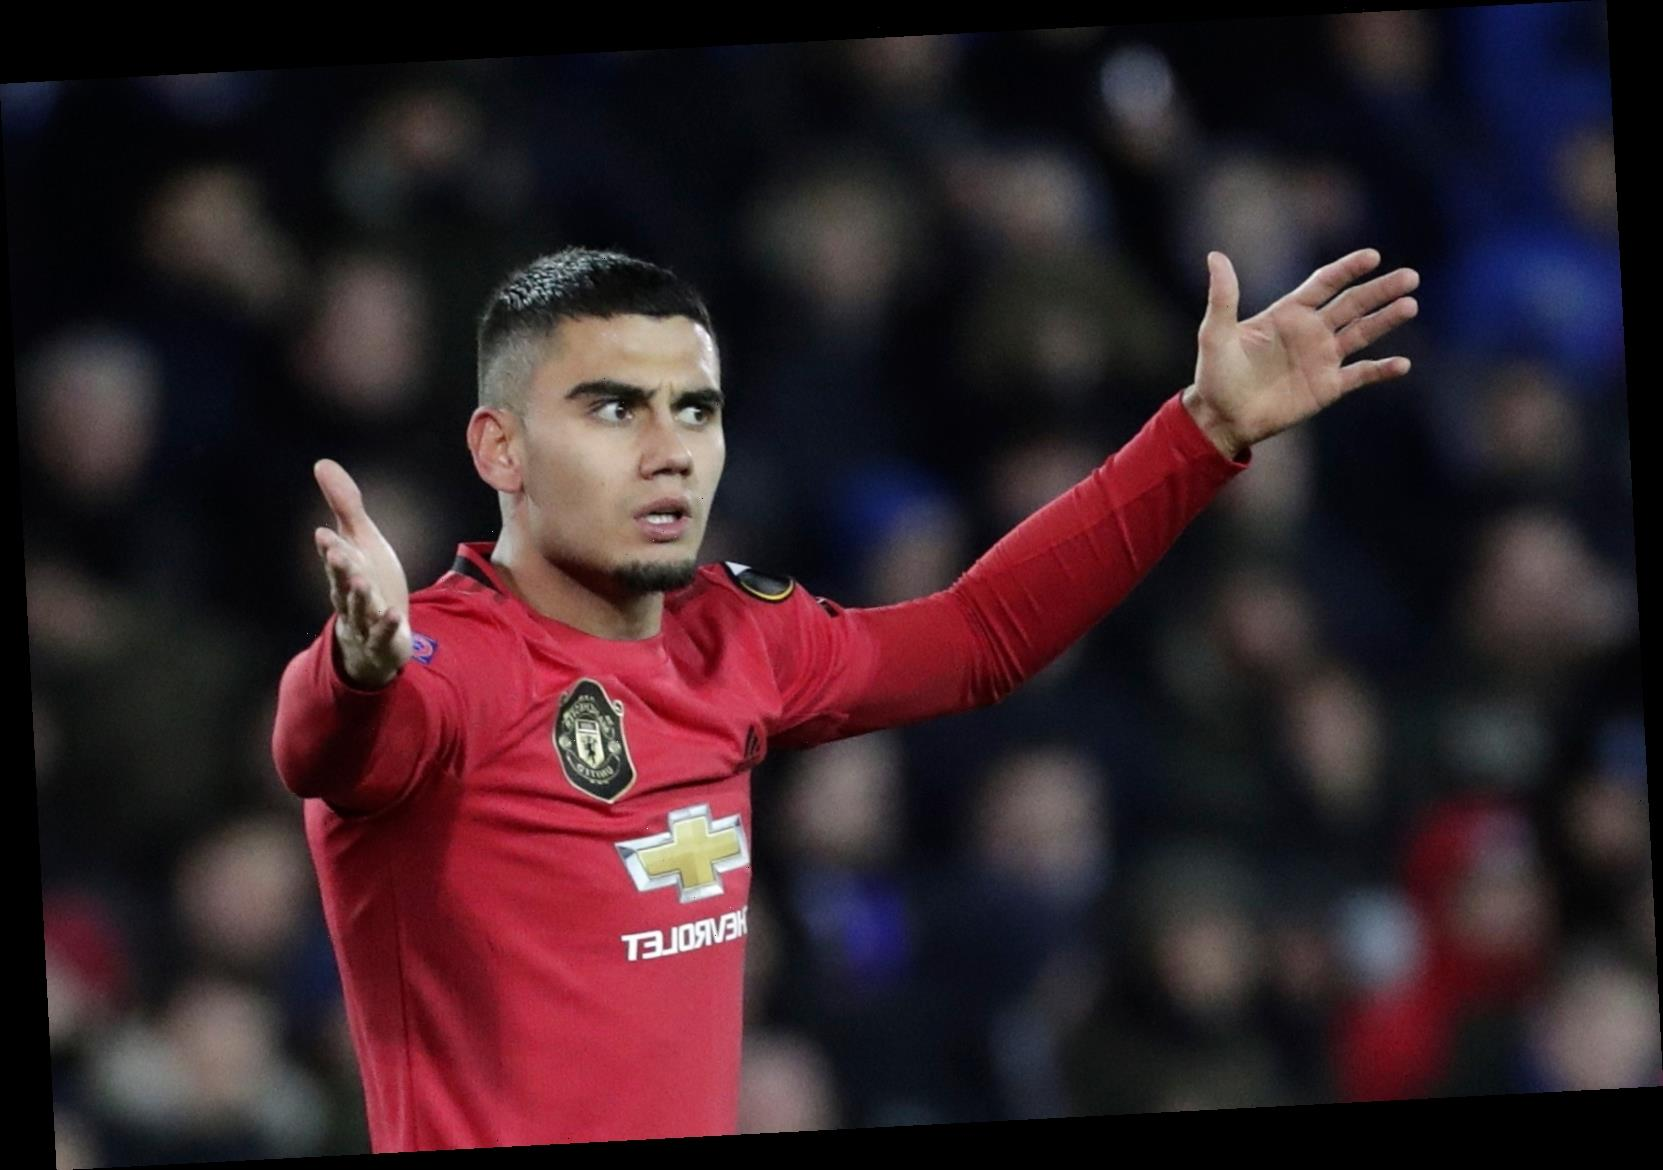 Man Utd star Andreas Pereira set to leave club with Benfica leading transfer chase ahead of German and Spanish rivals